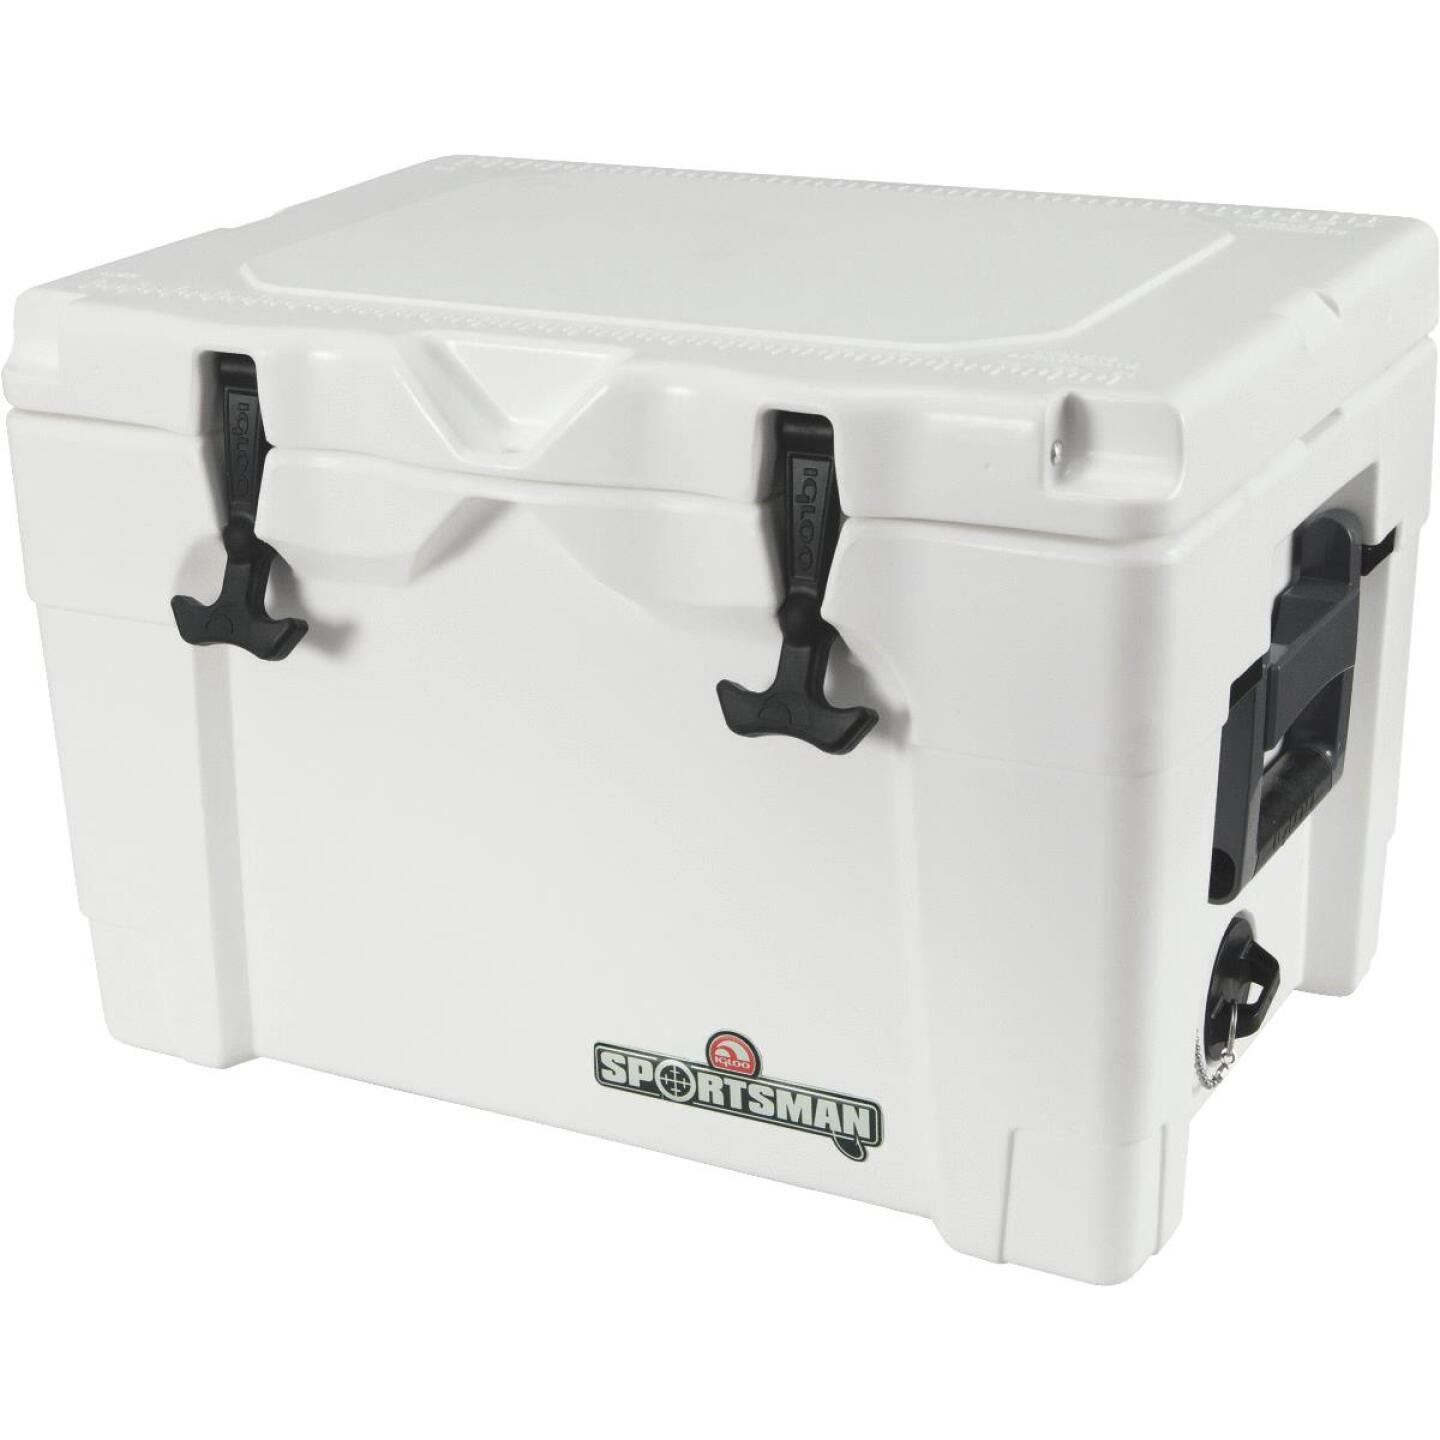 Igloo Sportsman 40 Qt. Rotomold Cooler, White Image 1